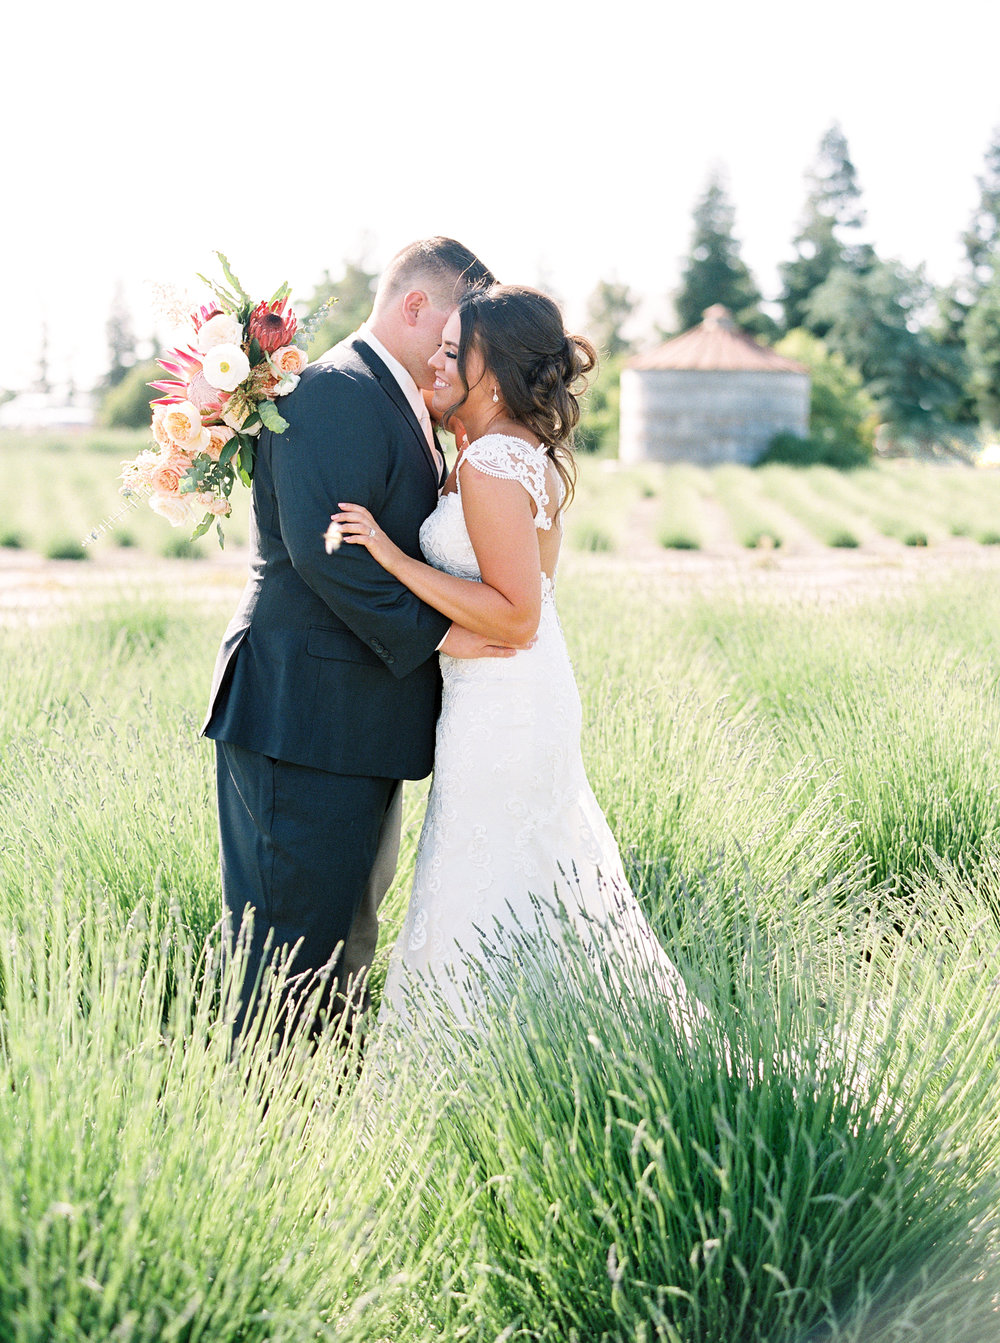 pageo-lavender-farm-wedding-turlock-california-42.jpg